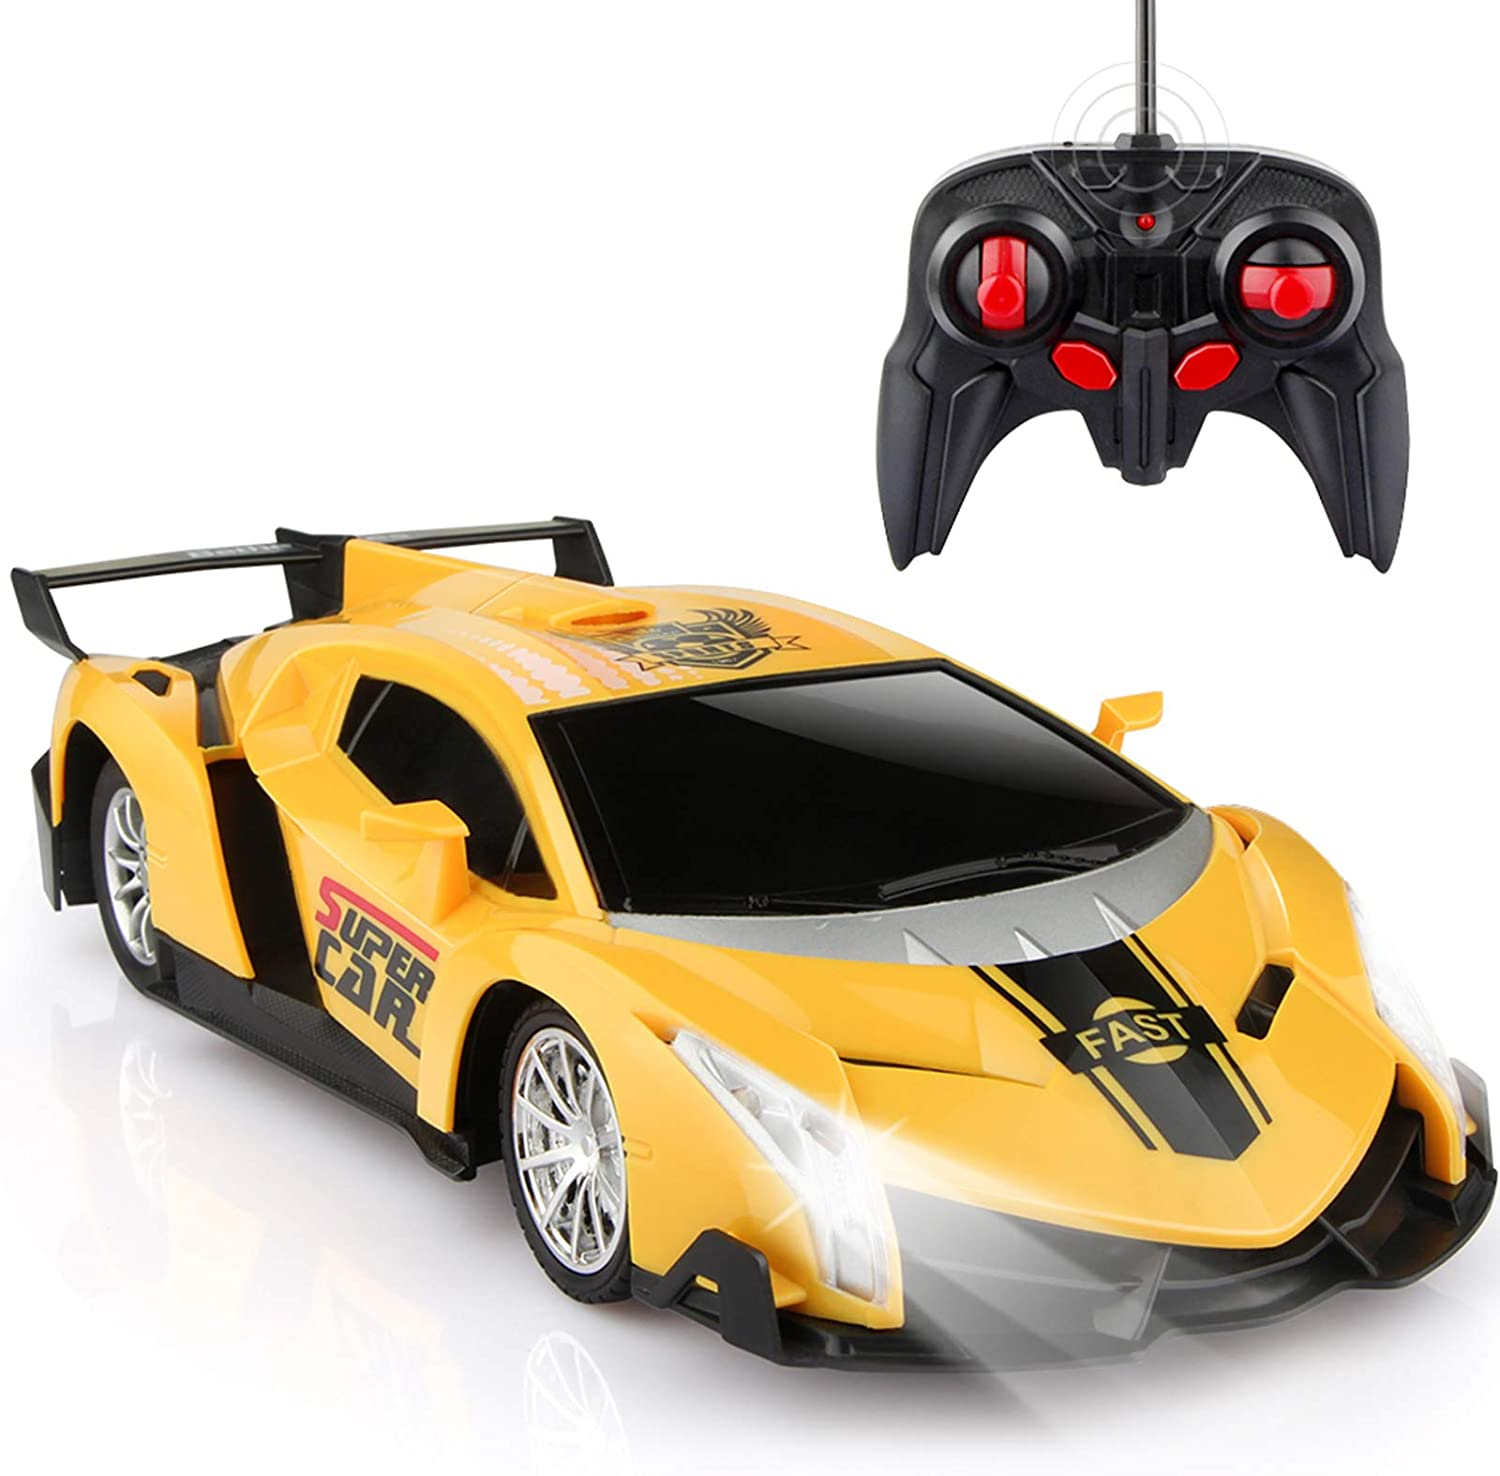 Growsland Remote Control Car, RC Cars Xmas Gifts for kids 1/18 Electric Sport Racing Hobby Toy Car Yellow Model Vehicle for Boys Girls Adults with Lights and Controller: Toys & Games